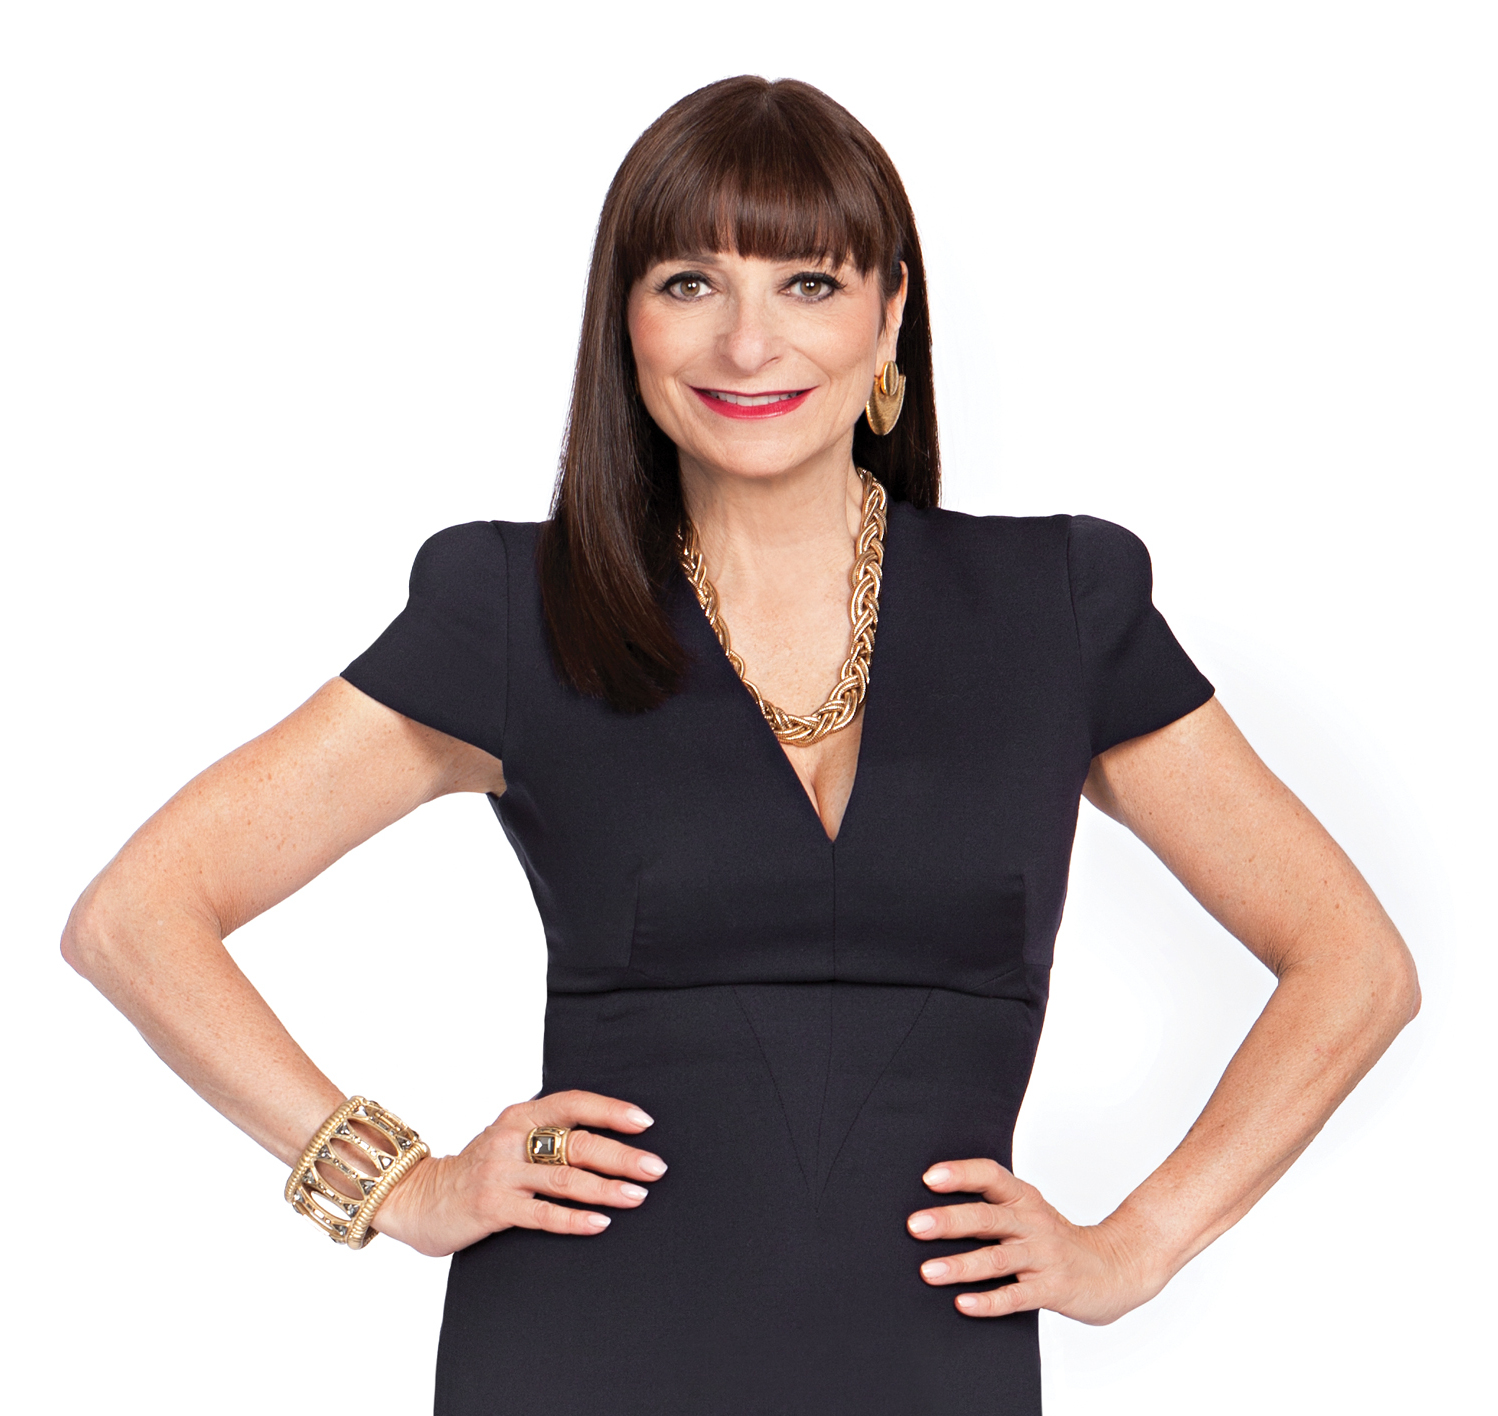 """Journalist, media personality and fashion entrepreneur - Jeanne Beker started her career as an actress, but moved into radio and then television as co-host of the ground-breaking series, The NewMusic, and entertainment anchor on CityPulse News. She went on to become the host of the internationally syndicated Fashion Television (FT), which aired for 27 years and had viewers in more than 130 countries. Jeanne is the former editor-in-chief of FQ and SIR magazines, and author of five books, including her 2010 autobiography, Finding Myself in Fashion. Jeanne was a contributing editor of The Toronto Star, The Kit, and a columnist for Metro, The Globe and Mail and Post City magazine. She also writes for a number of lifestyle publications. Her fashion and editorial credits include her clothing line, Edit by Jeanne Beker, as well a number of product lines, including shoes, jewelry and sunglasses. Jeanne was recently named Style Editor of The Shopping Channel, and hosts a regular series for the channel entitled """"Style Matters with Jeanne Beker"""". Her numerous awards include her appointment to the Order of Canada in 2014 for her support of the Canadian fashion industry; the 2012 Canadian Award of Distinction from the Banff World Media Festival; and being honoured with a Canadian Screen Achievement Award for the role she played in changing the way Canadians watch television."""